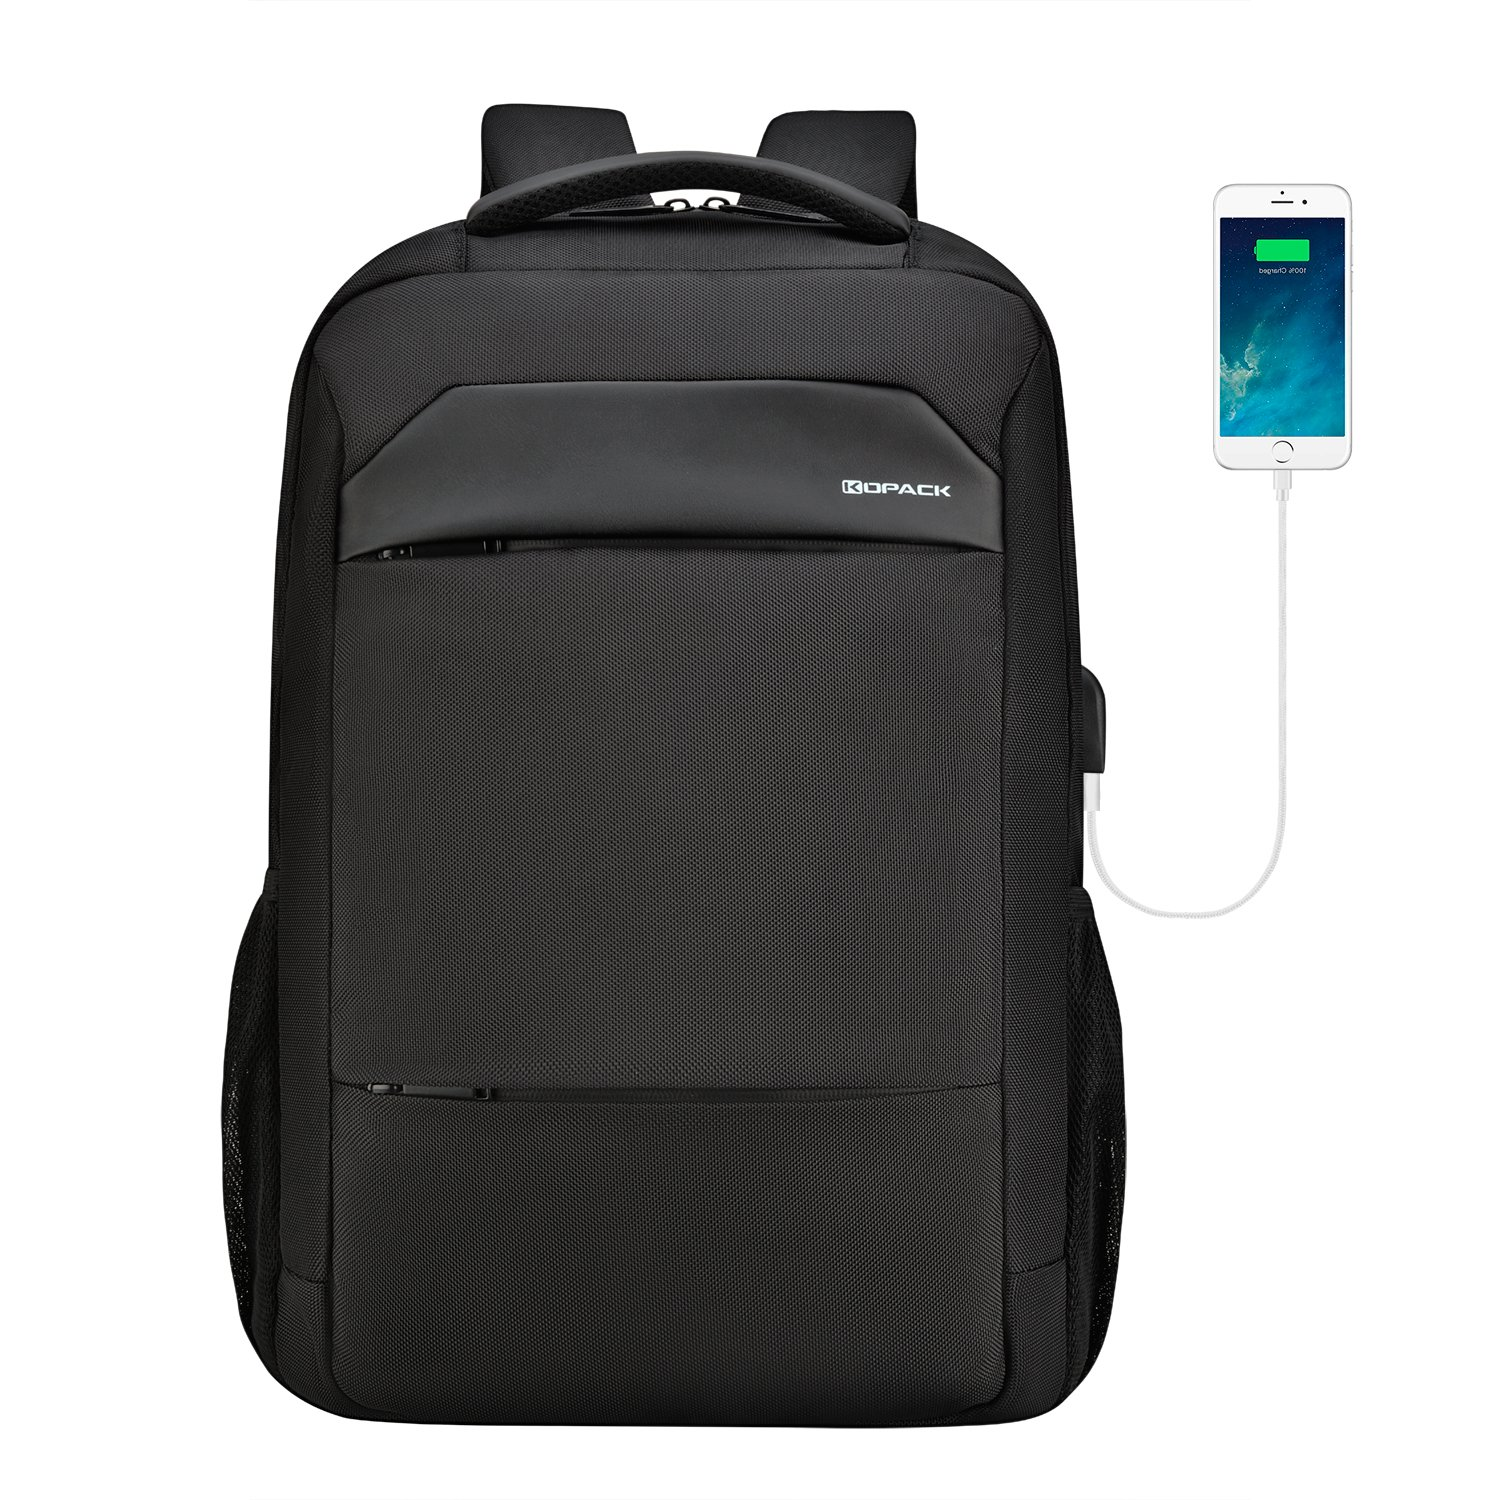 kopack Slim Laptop Backpack USB Port Waterproof Zipper Computer Backpack for Business College for 15 15.6 Inch by kopack